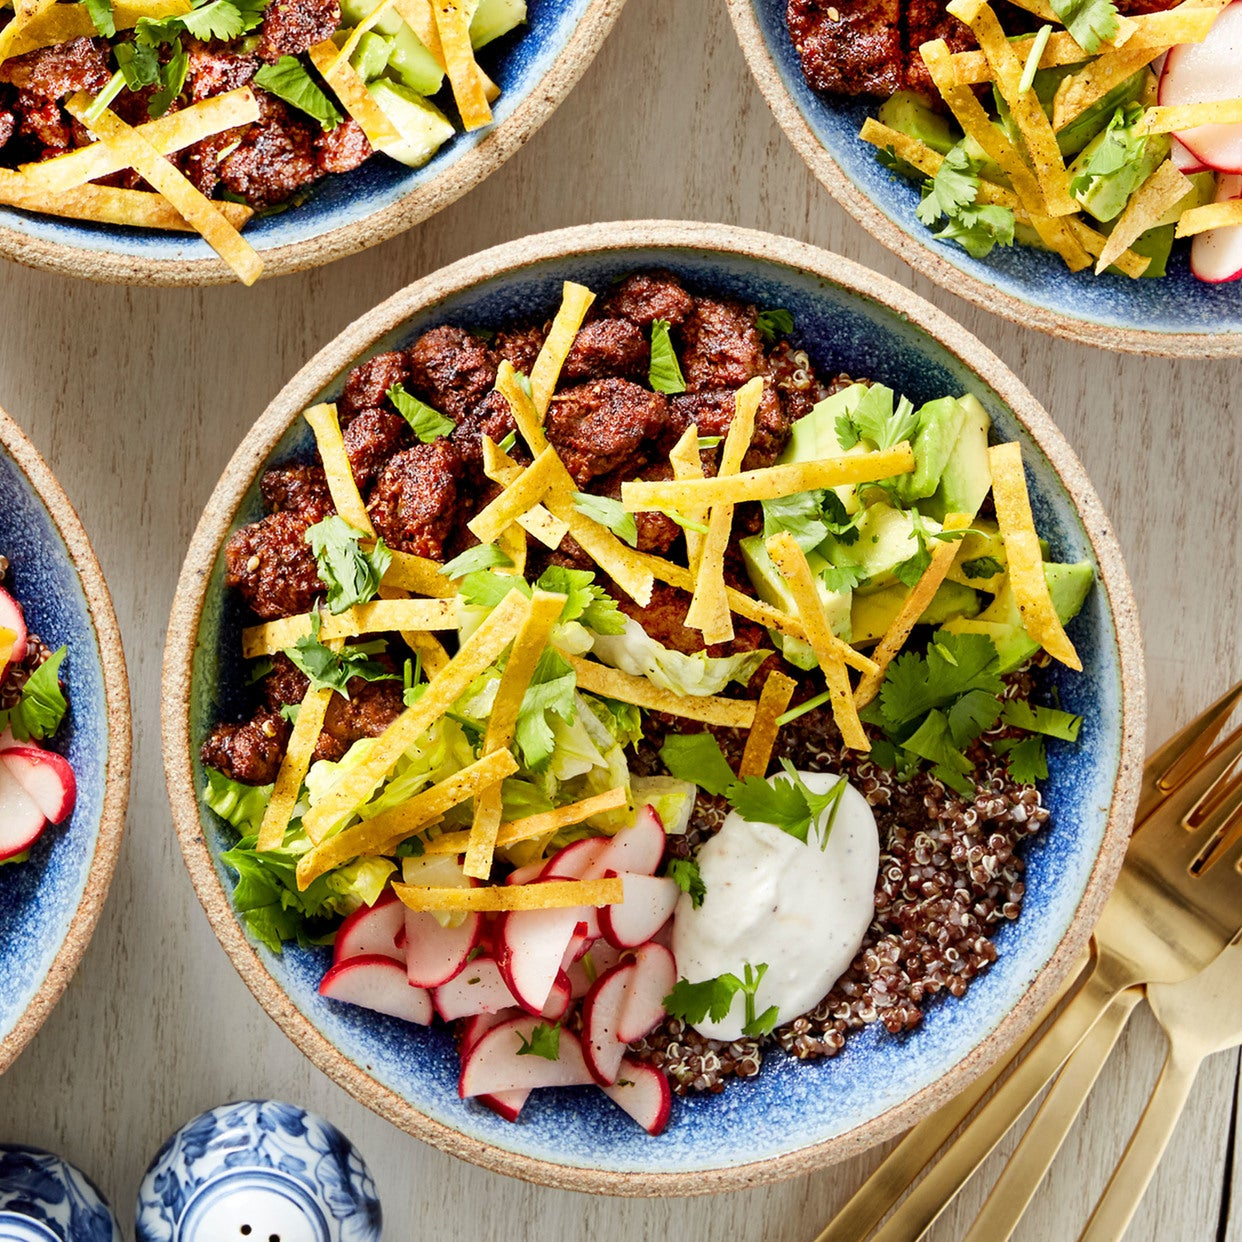 Mole-Spiced Beef & Red Quinoa Bowls with Avocado & Lime Crema